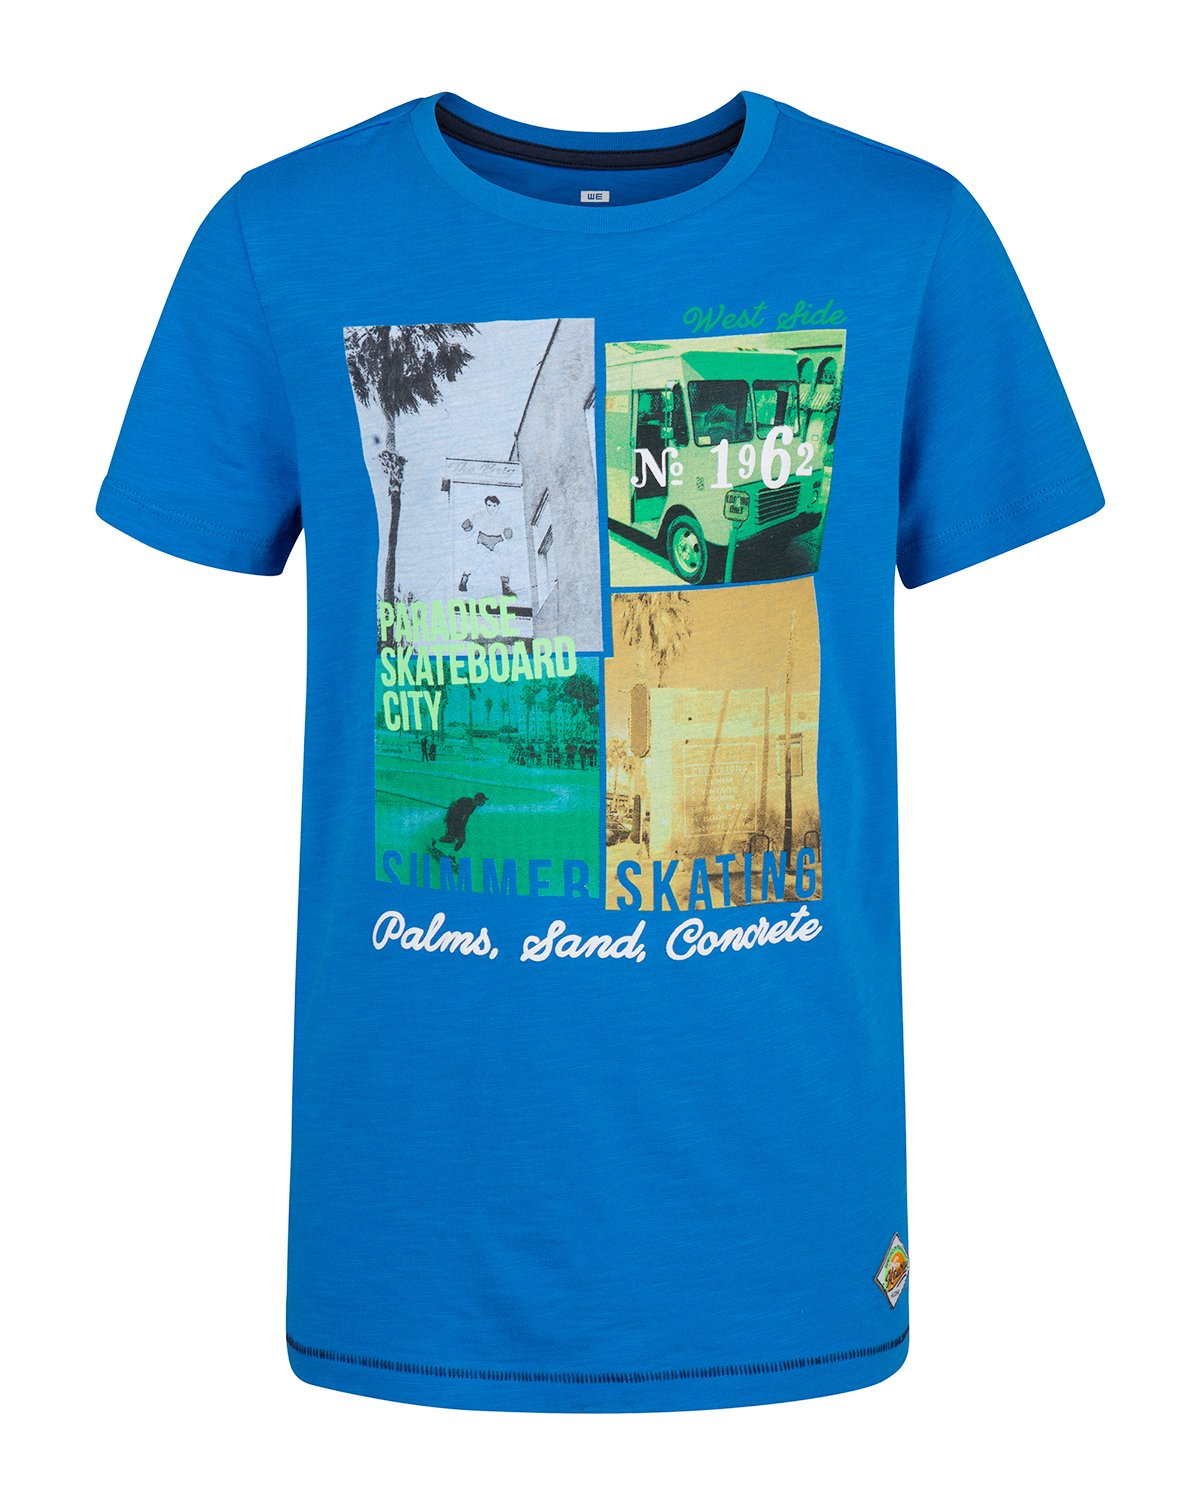 Jungen t shirt mit print 82917401 we fashion for T shirt printing delaware